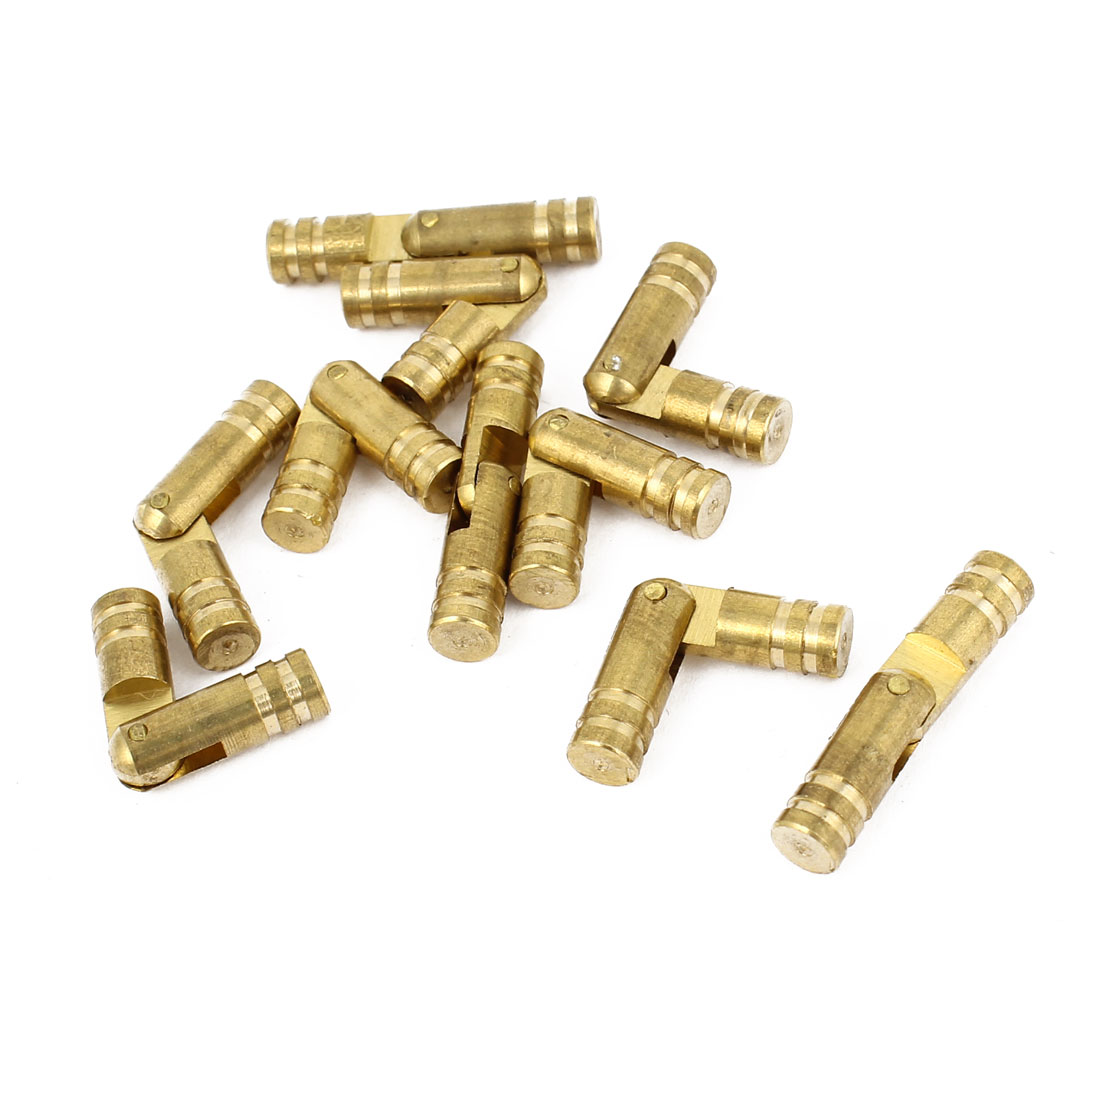 10 Pcs Gold Tone Cylinder Shape Rotary Window Drawer Door Pin Hinges 2.5cm Long